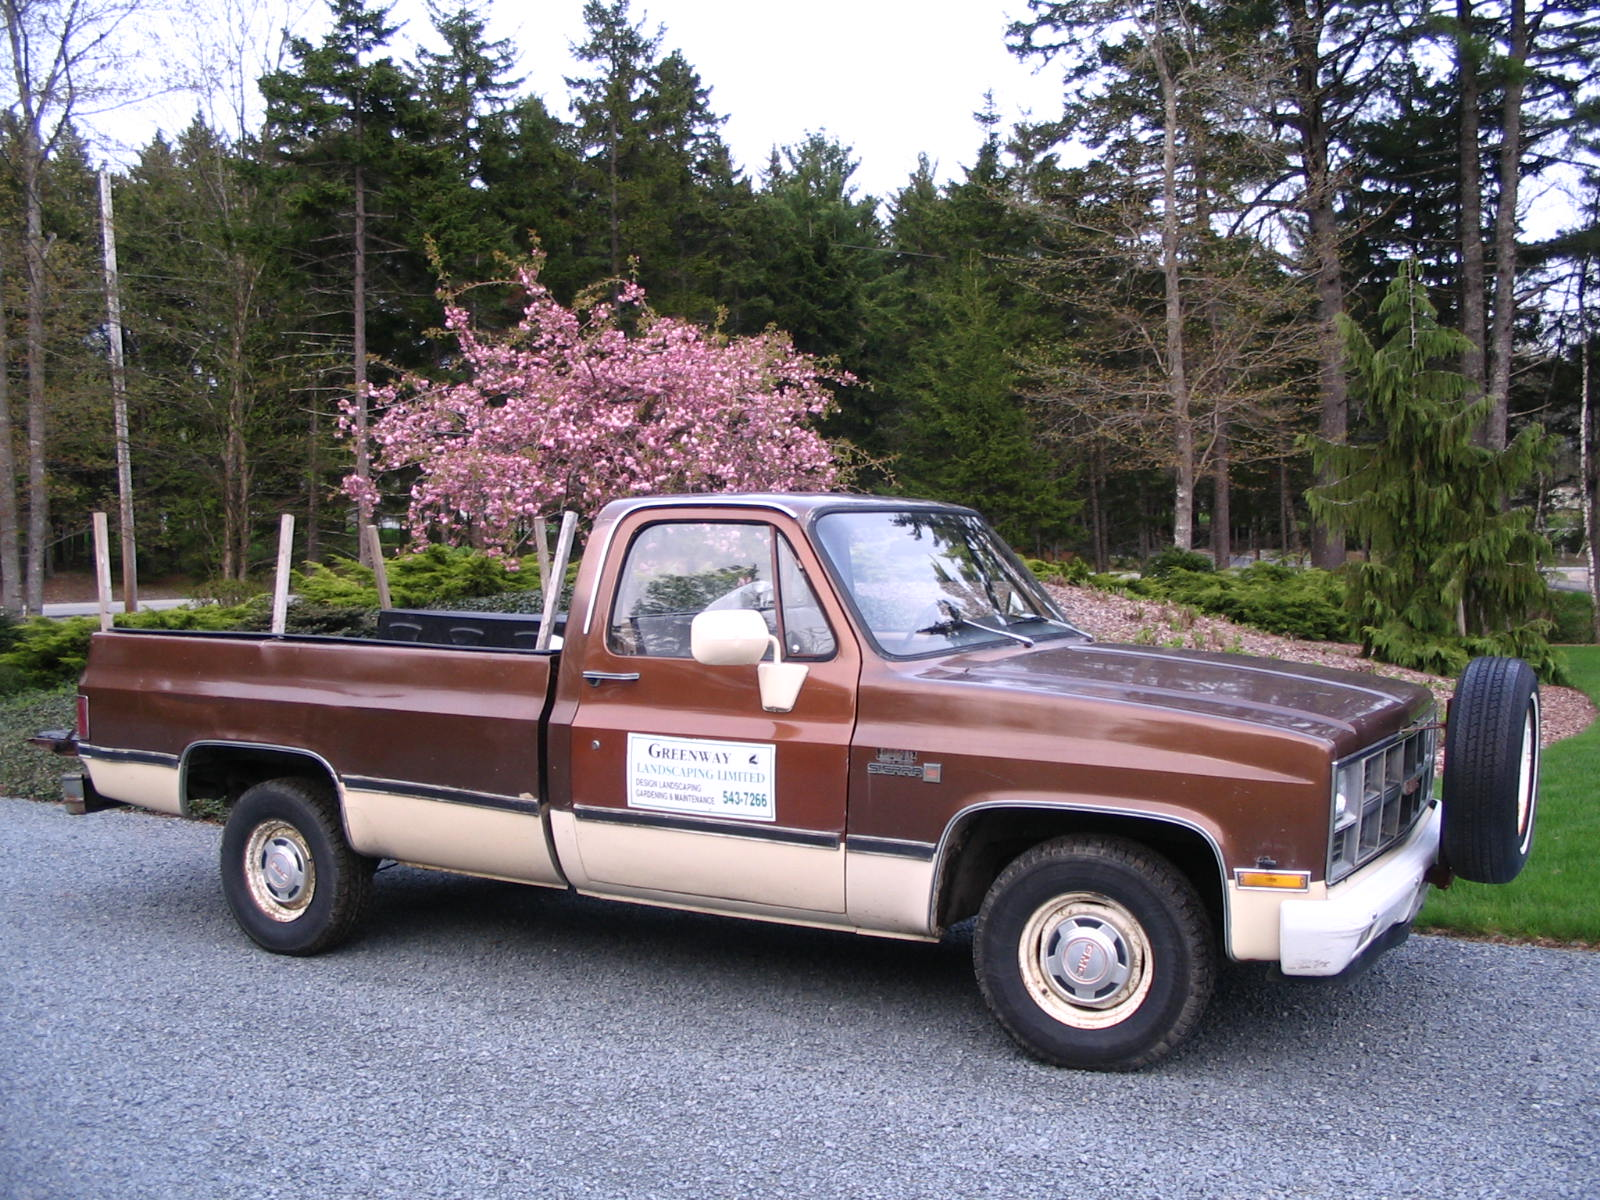 Our Favourite - A Classic 1981 Chev 1/2 Ton